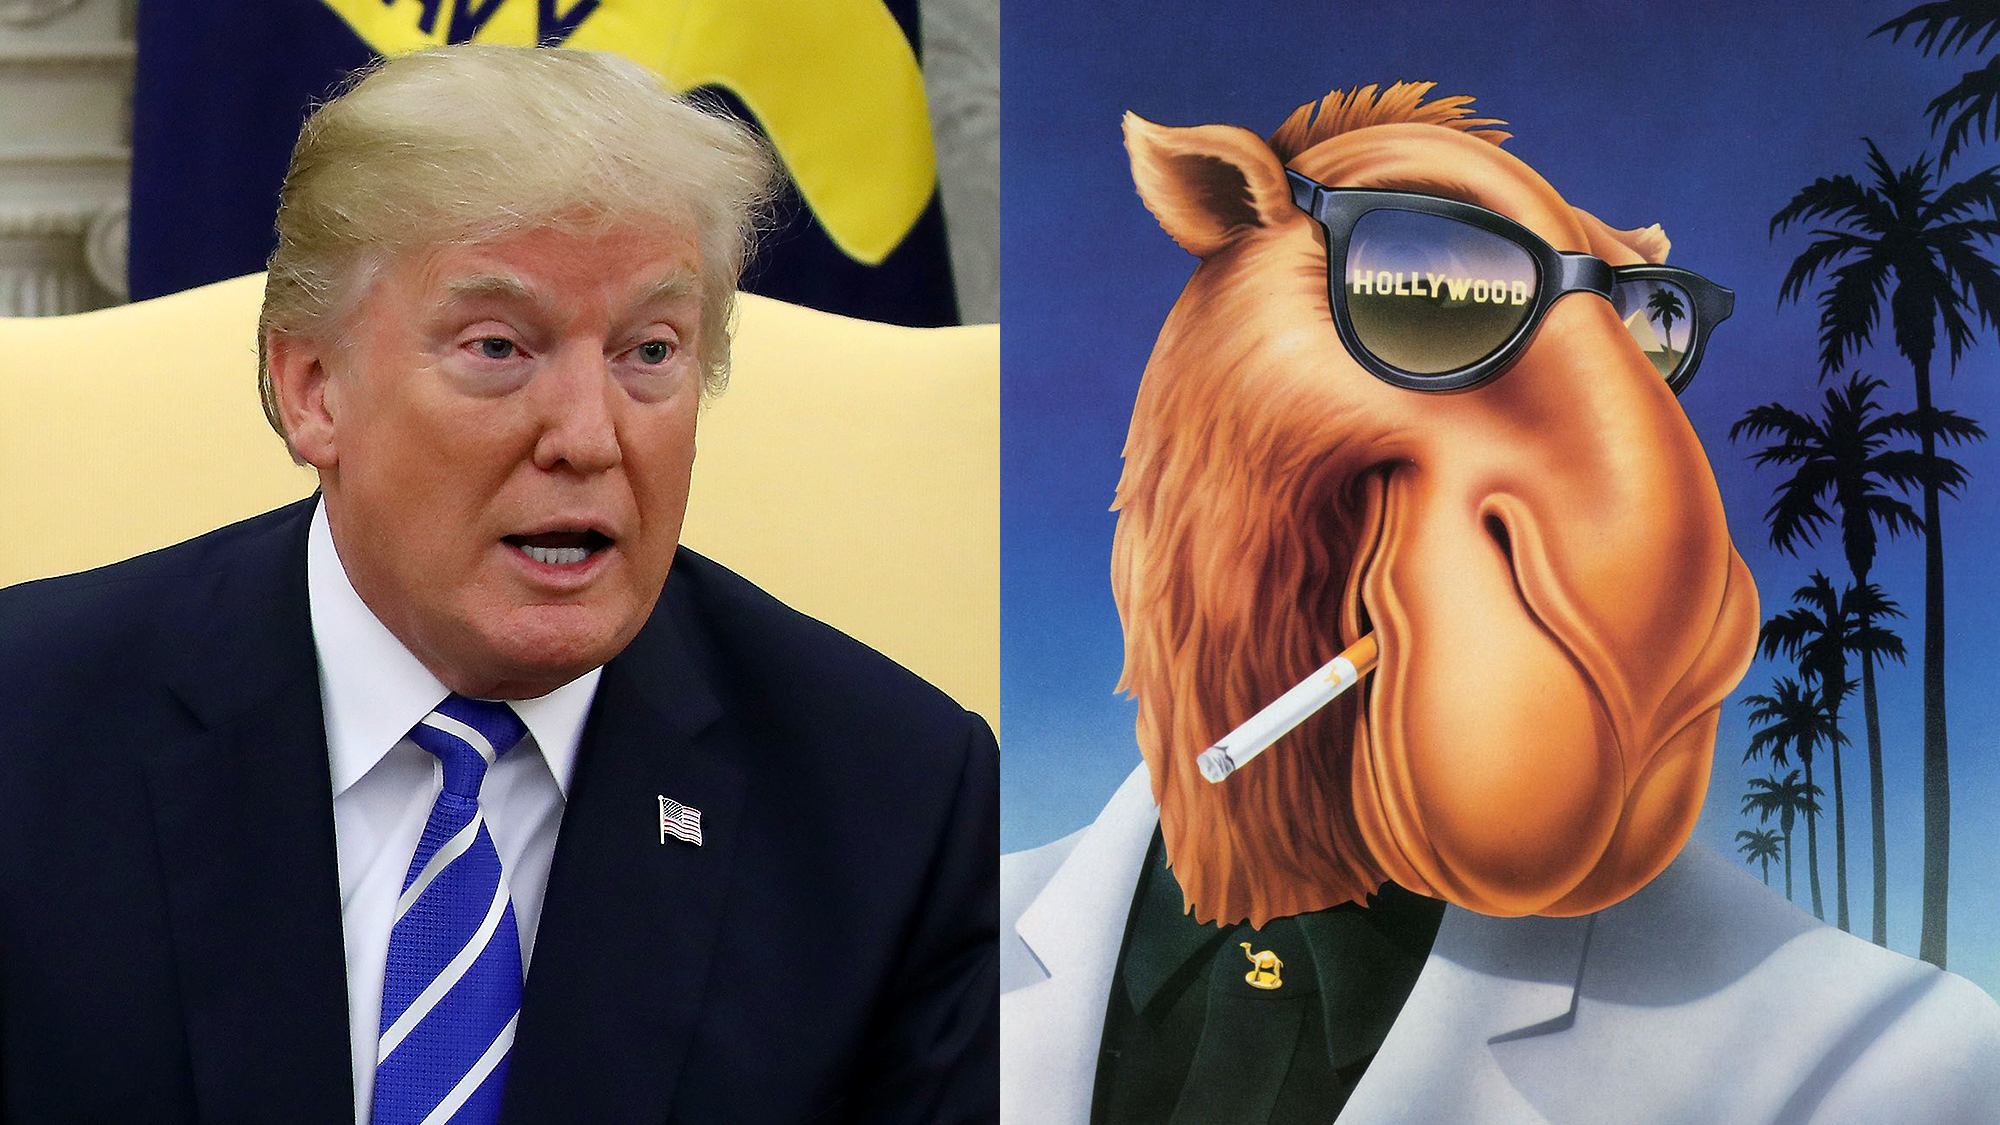 Celebrating An Icon: President Trump Has Invited Joe Camel To The ...